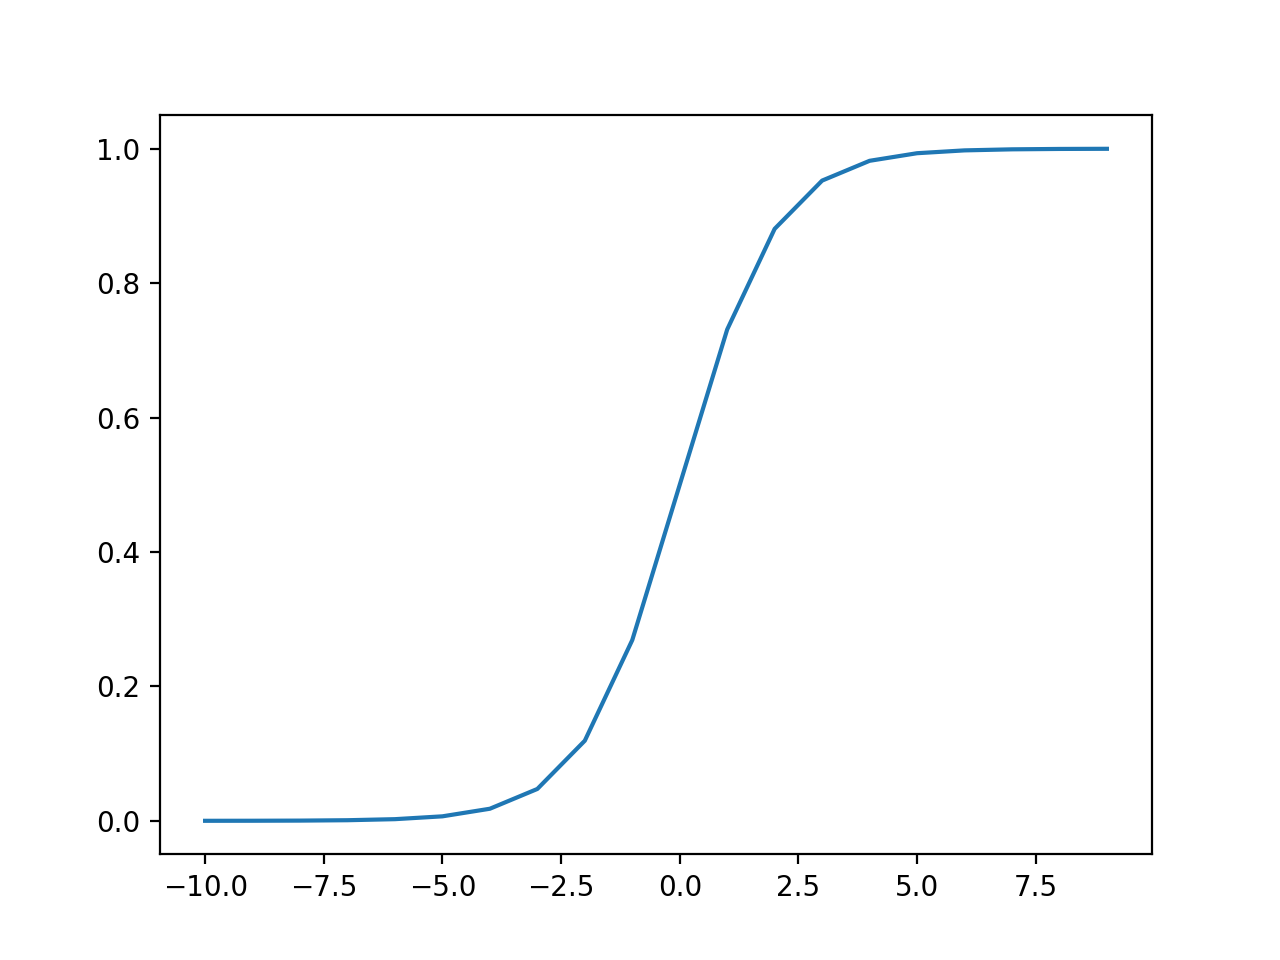 Plot of Inputs vs. Outputs for the Sigmoid Activation Function.